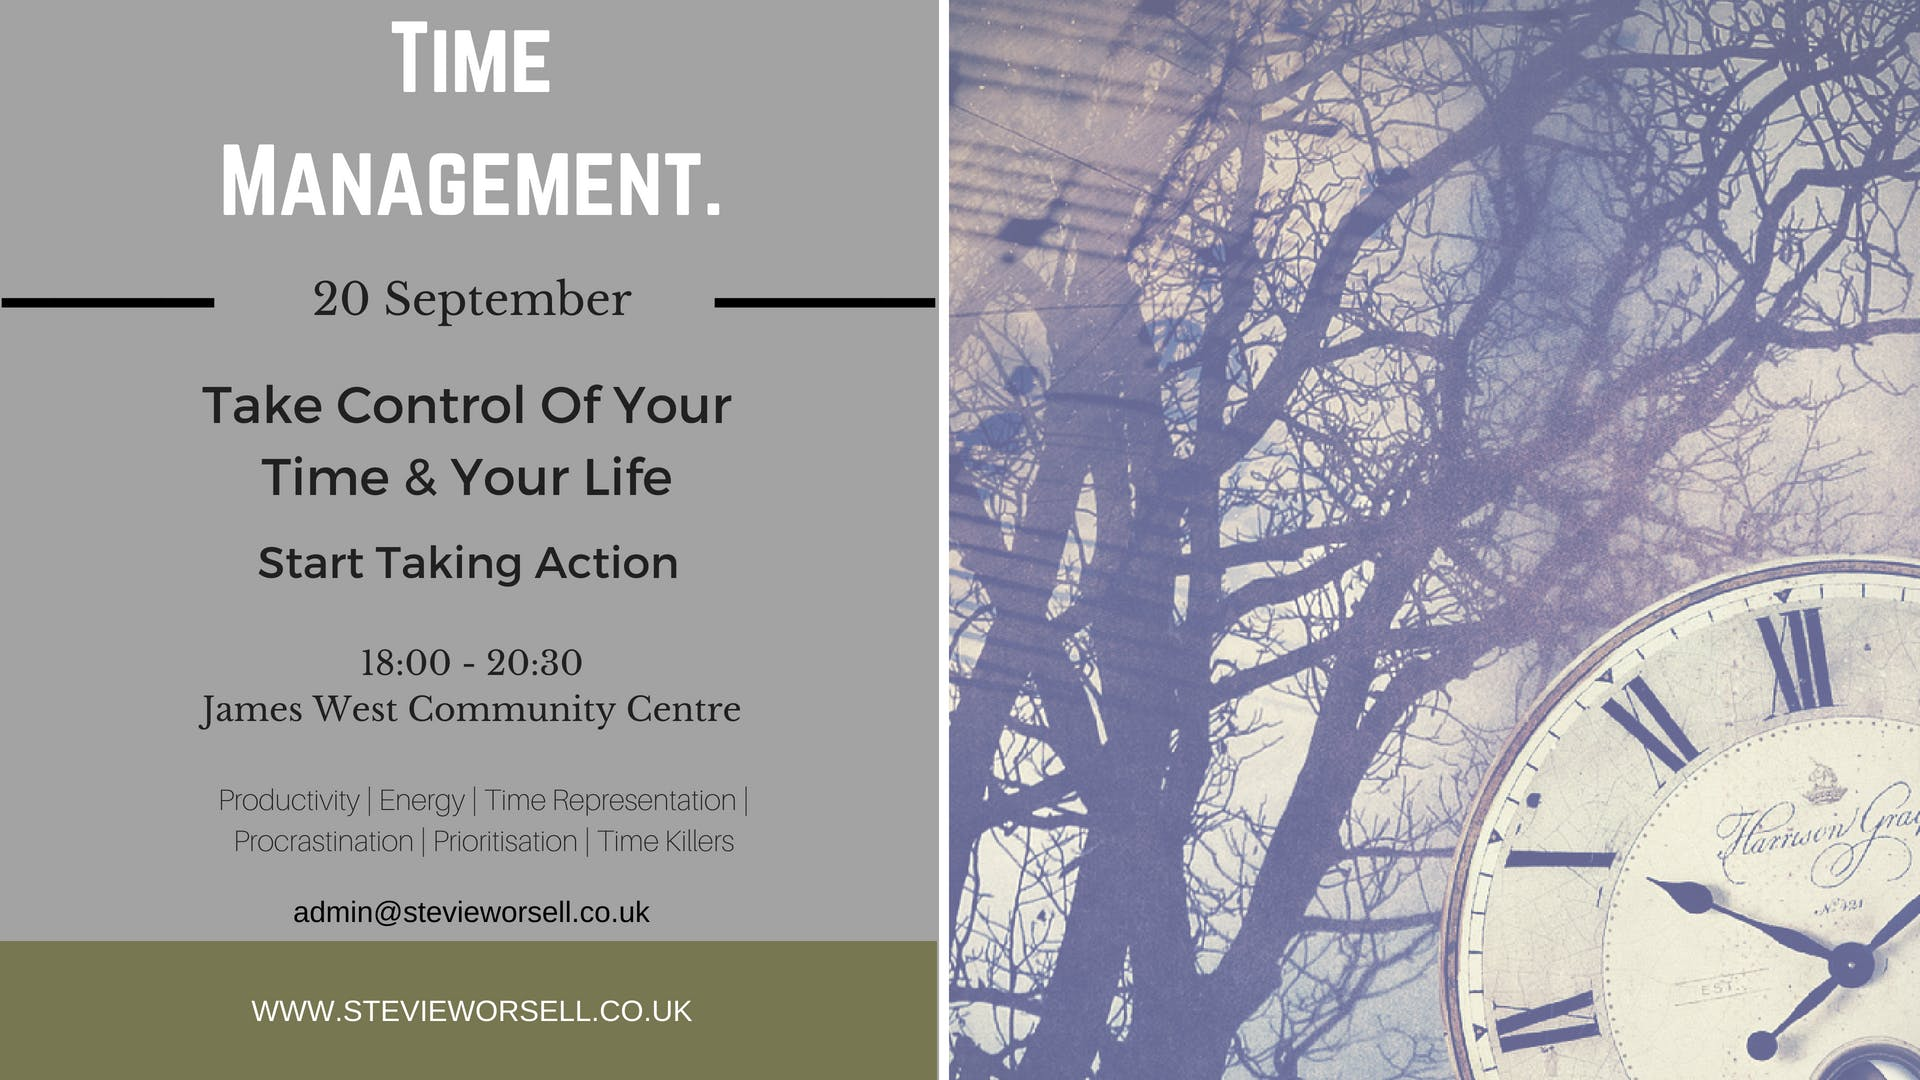 Time Management - Master Time & Your Life